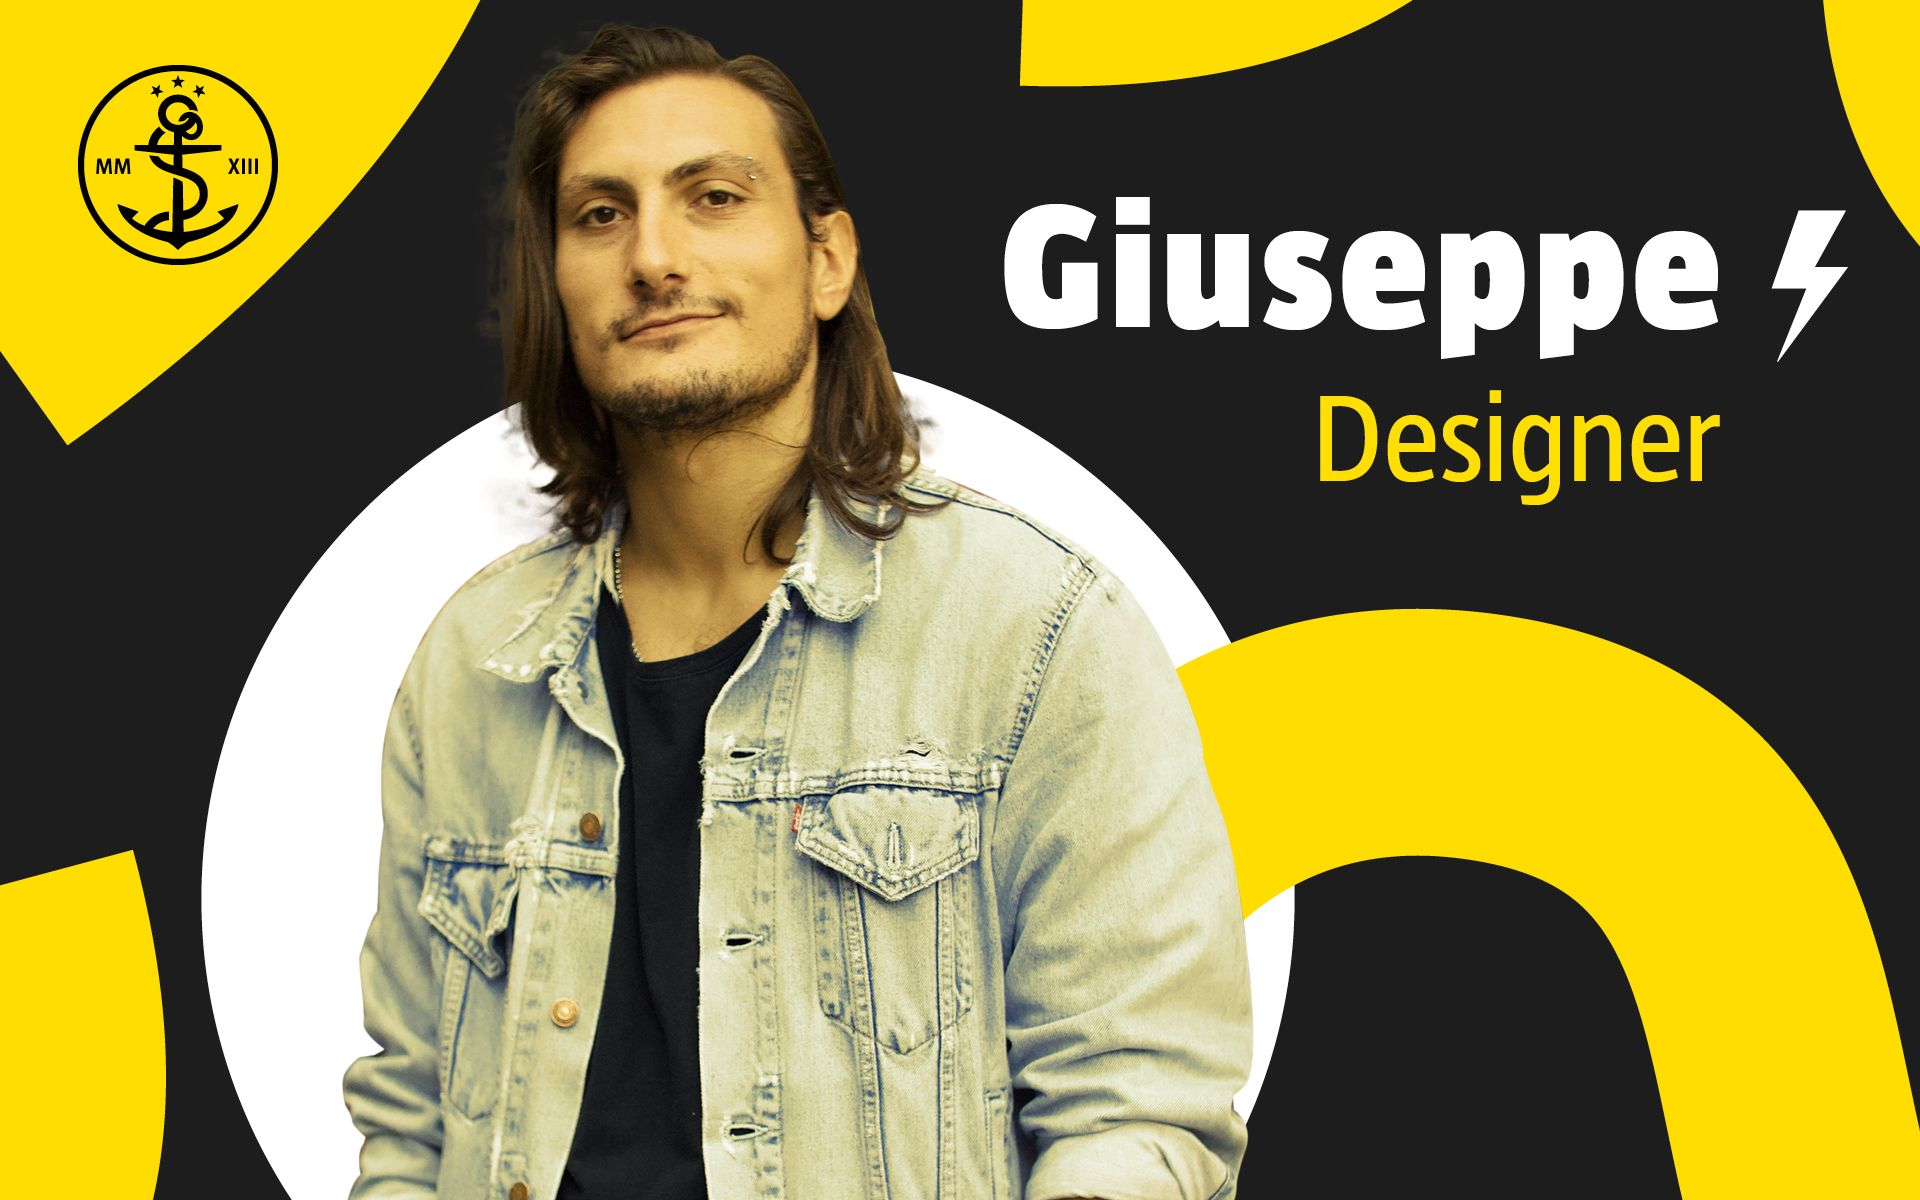 stay golden, team, giuseppe migliaccio, design, corporate design, branding, düsseldorf